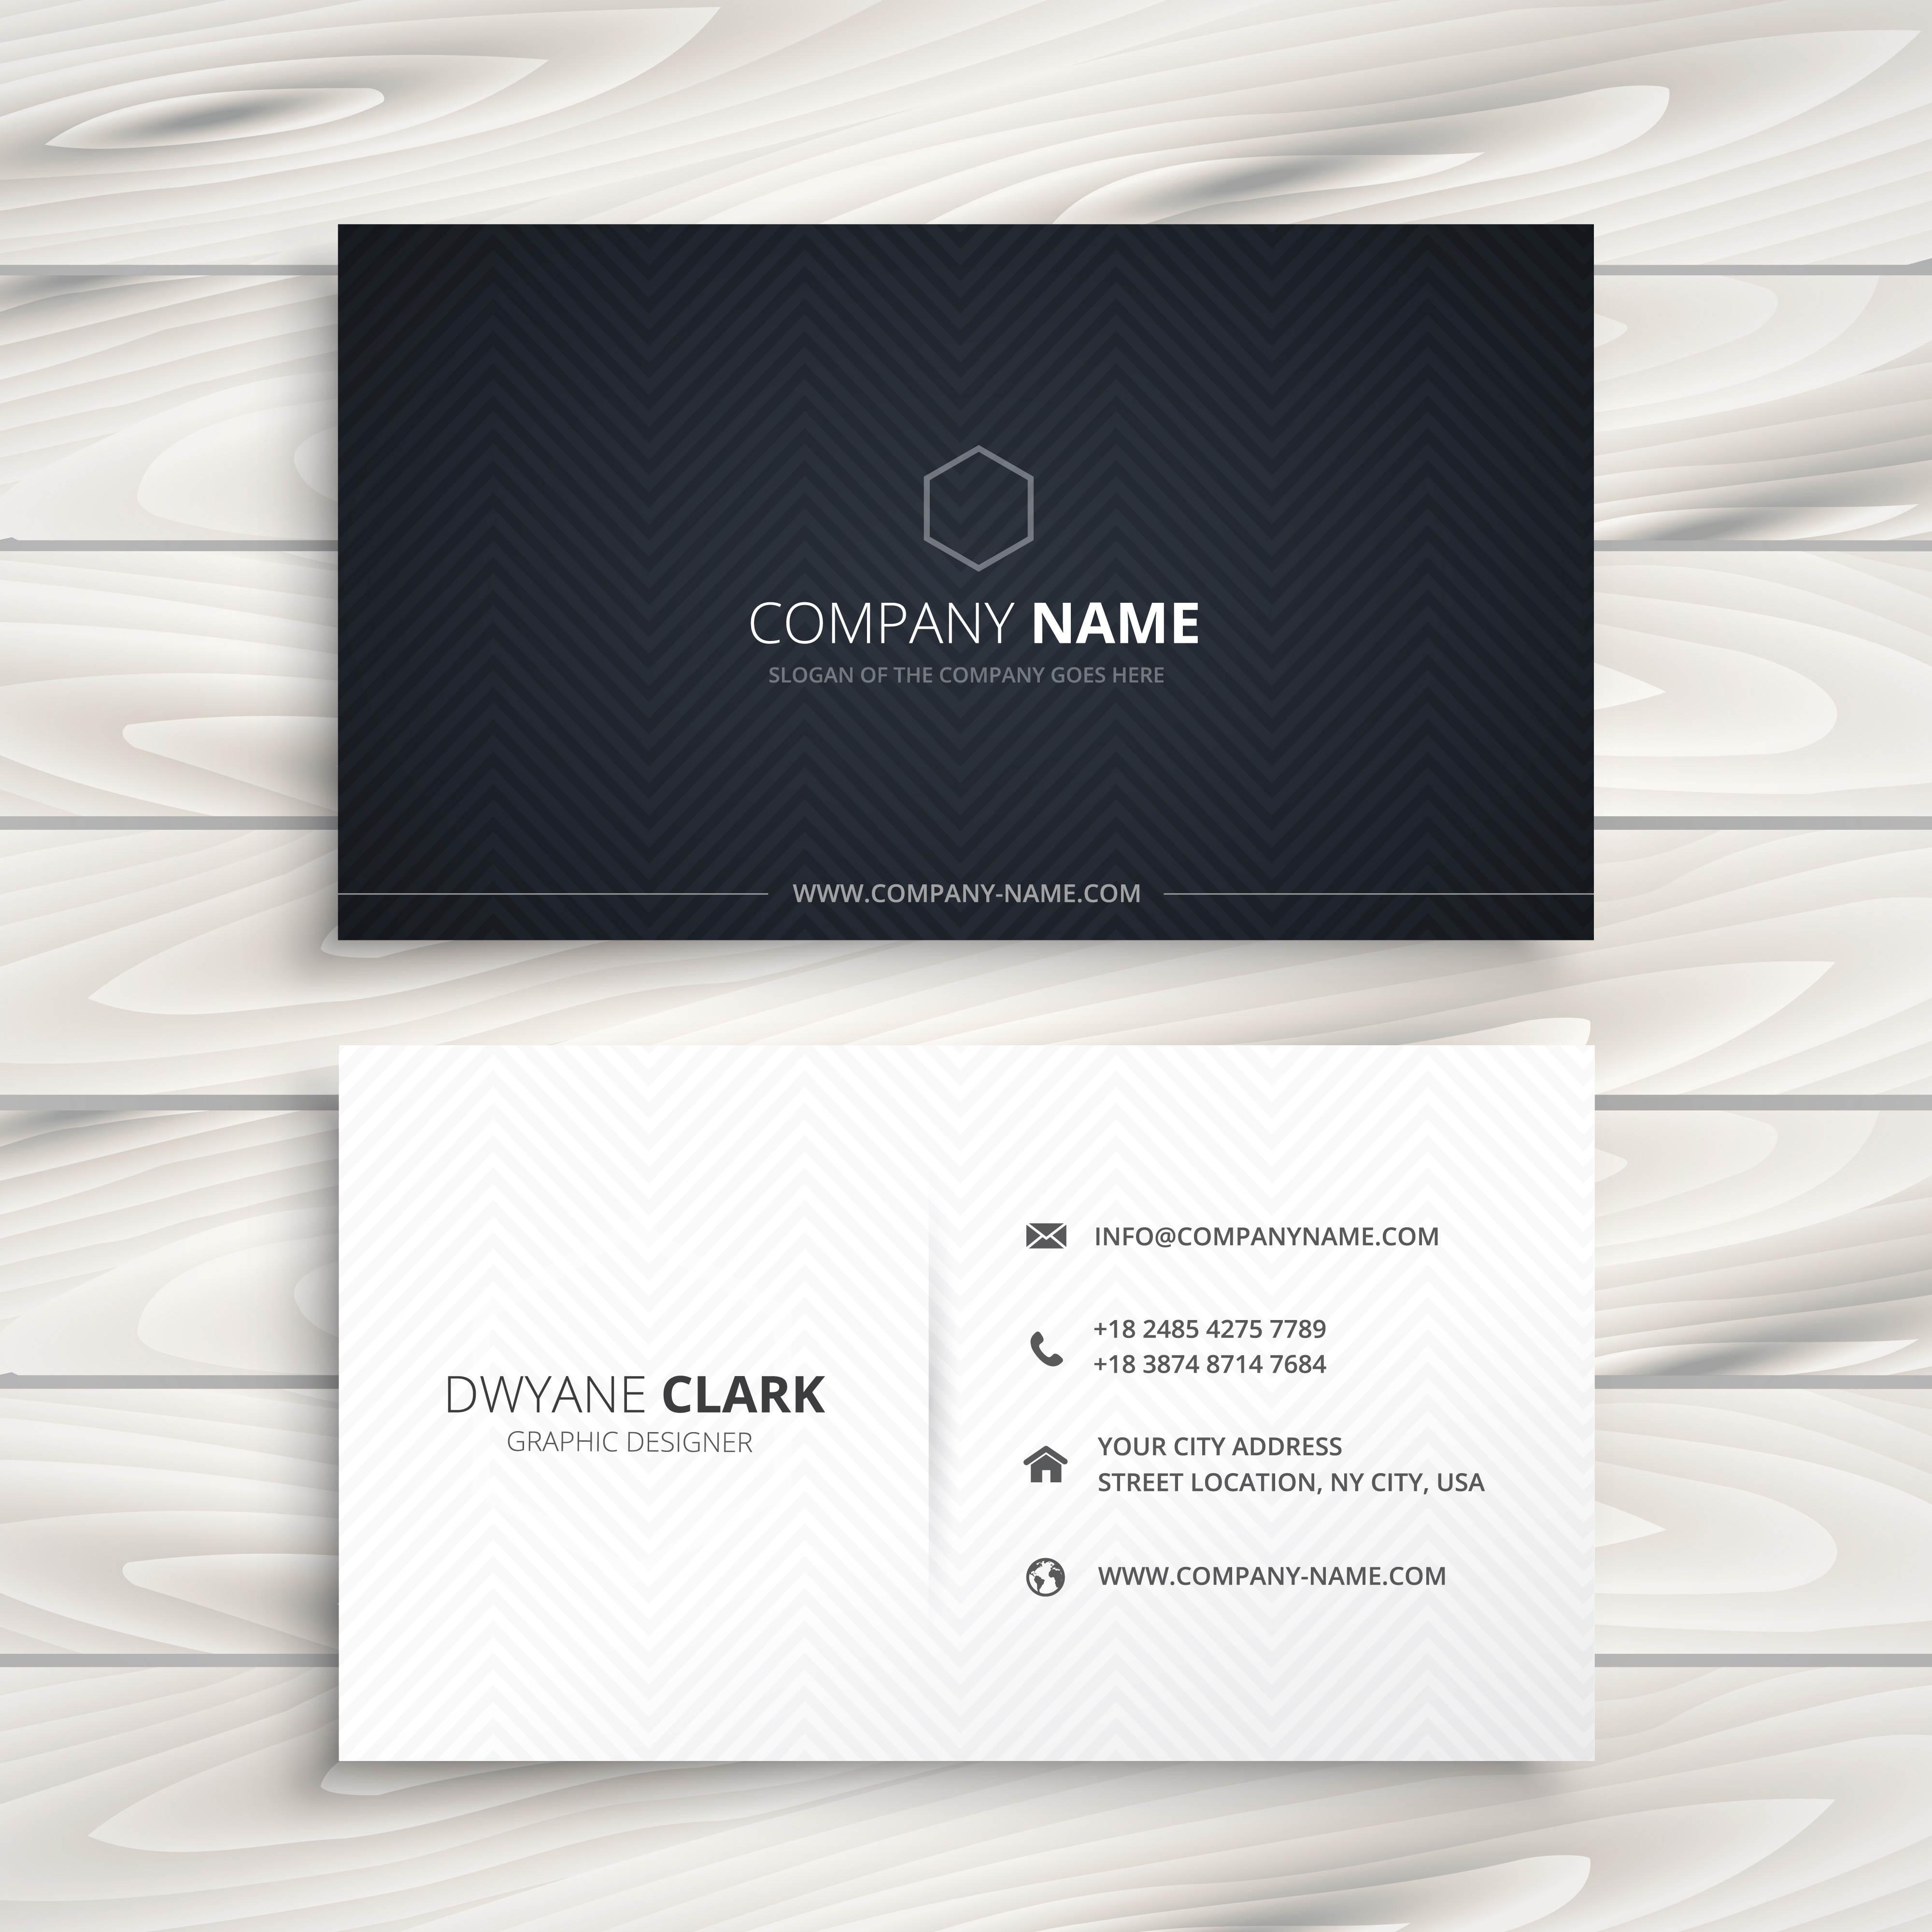 Simple Business Card In Black And White Style Vector